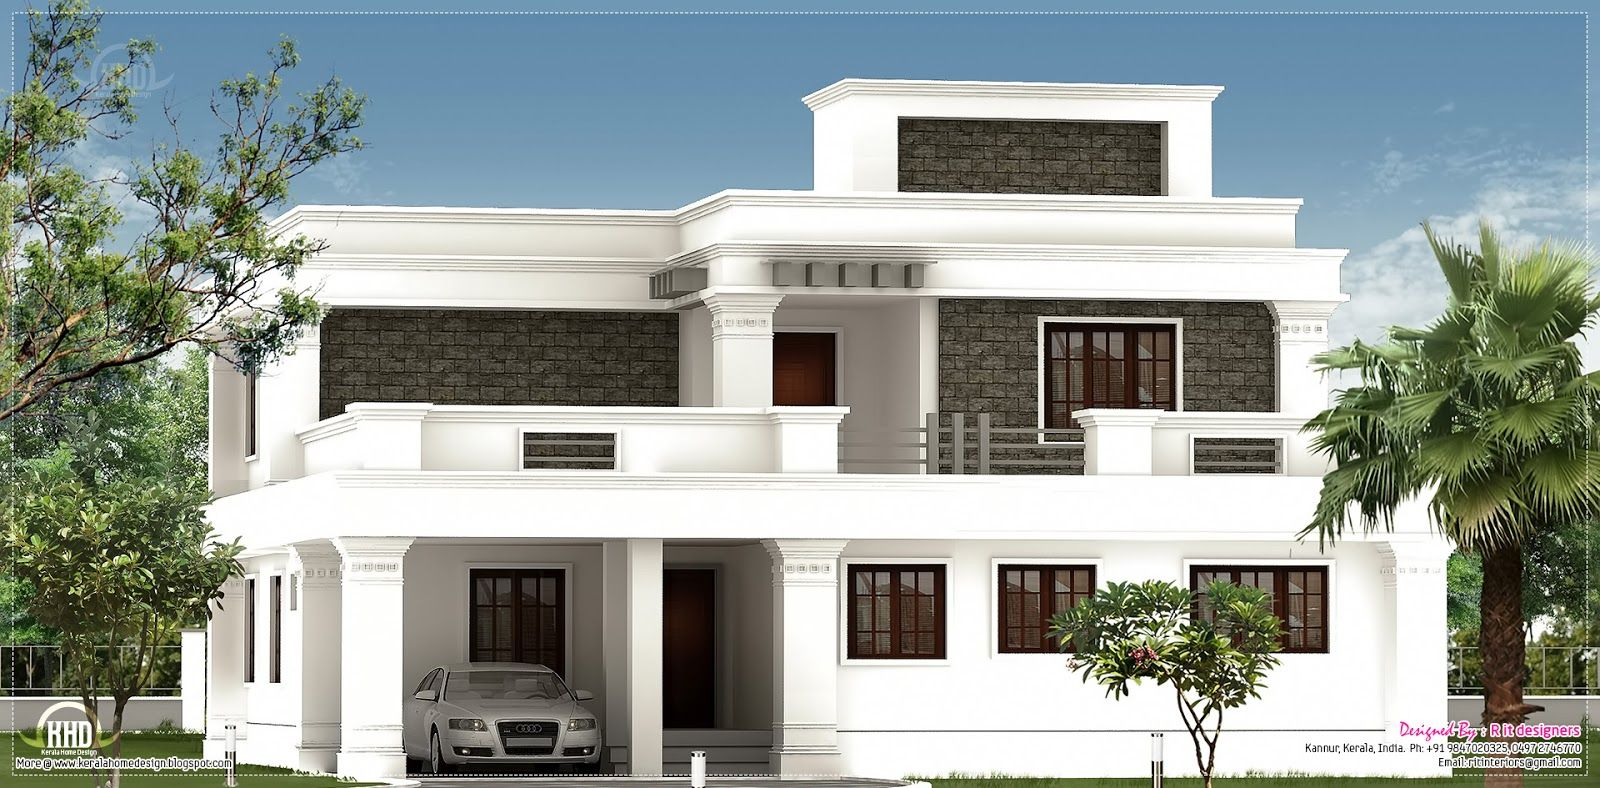 Flat roof homes designs flat roof villa exterior in 2400 for Building front design